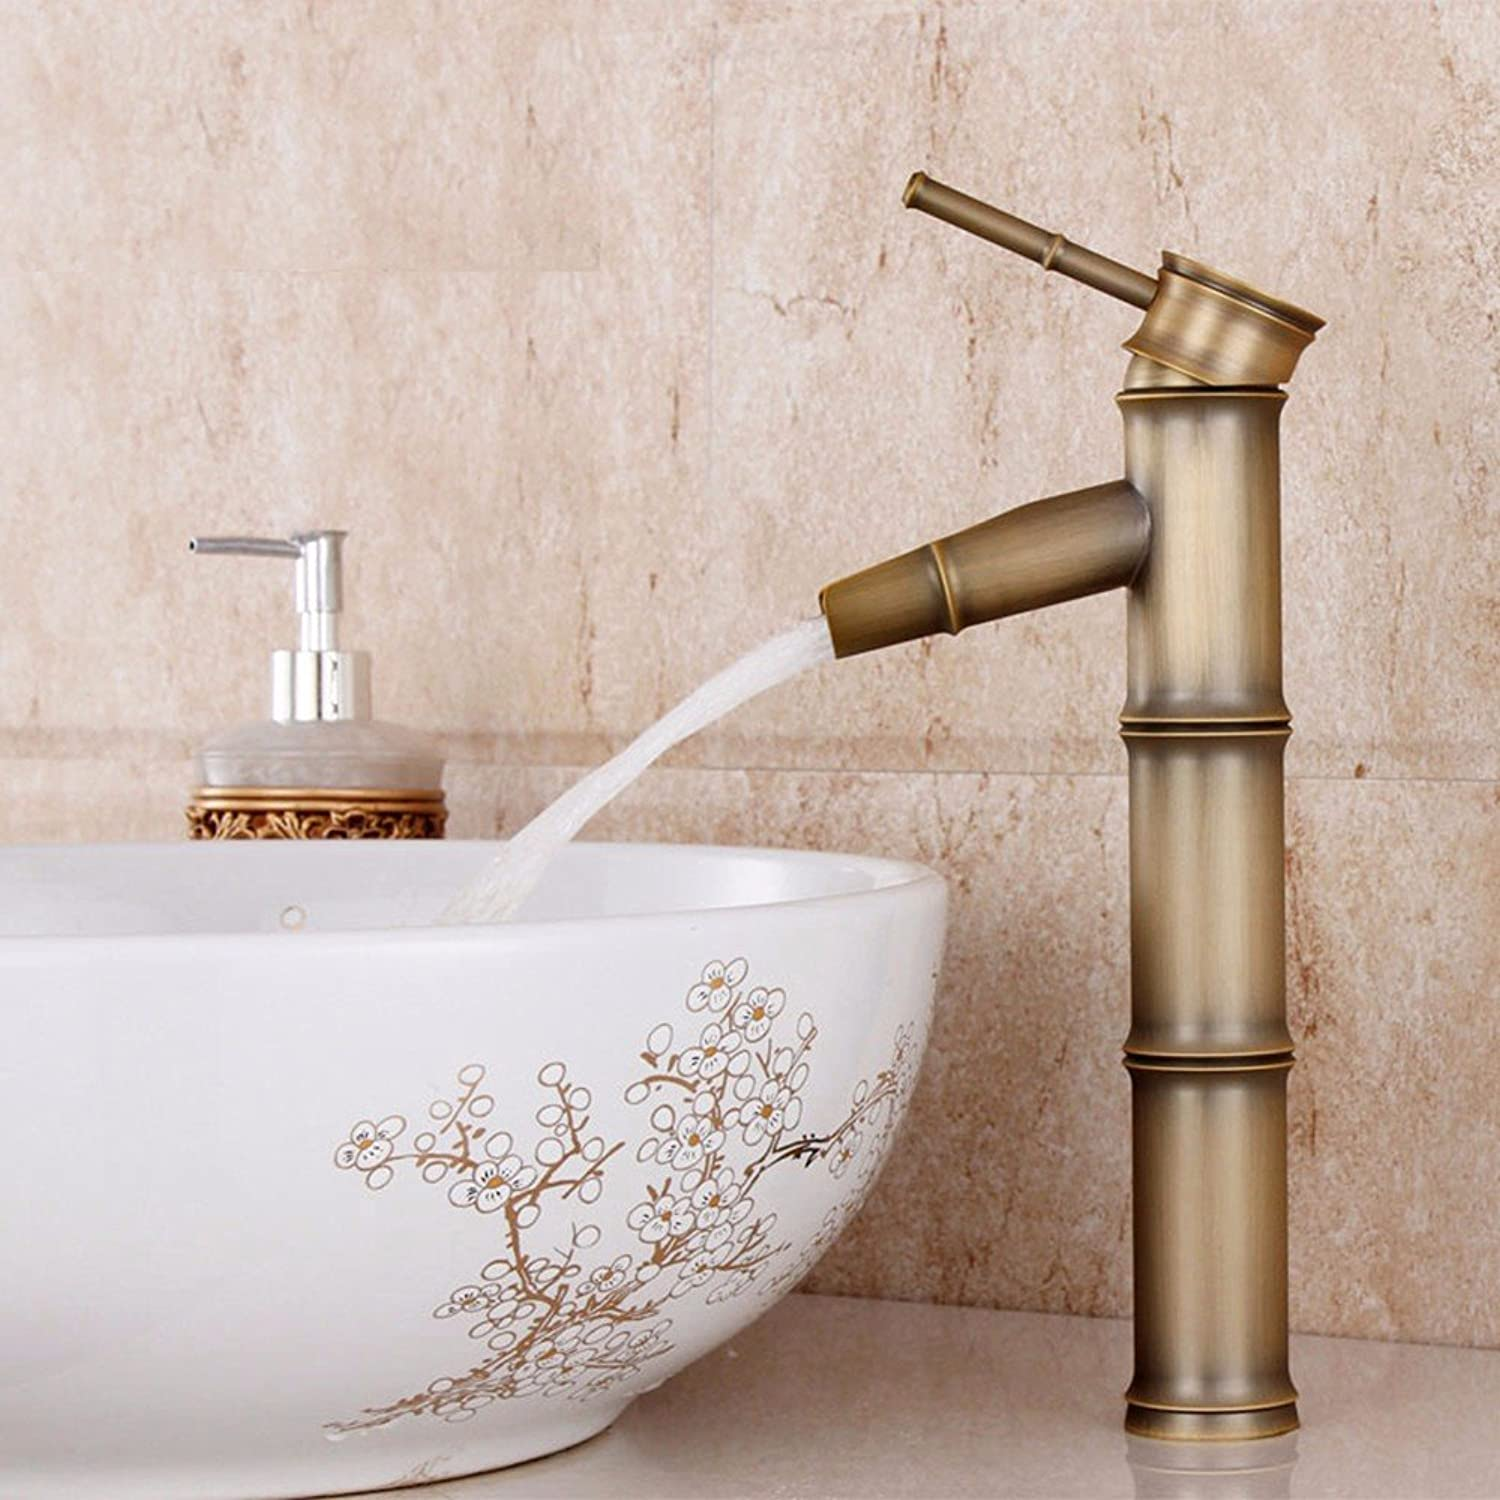 Hlluya Professional Sink Mixer Tap Kitchen Faucet Copper, hot and cold, the basin, single-cooled, single handle single hole sink Faucet 10